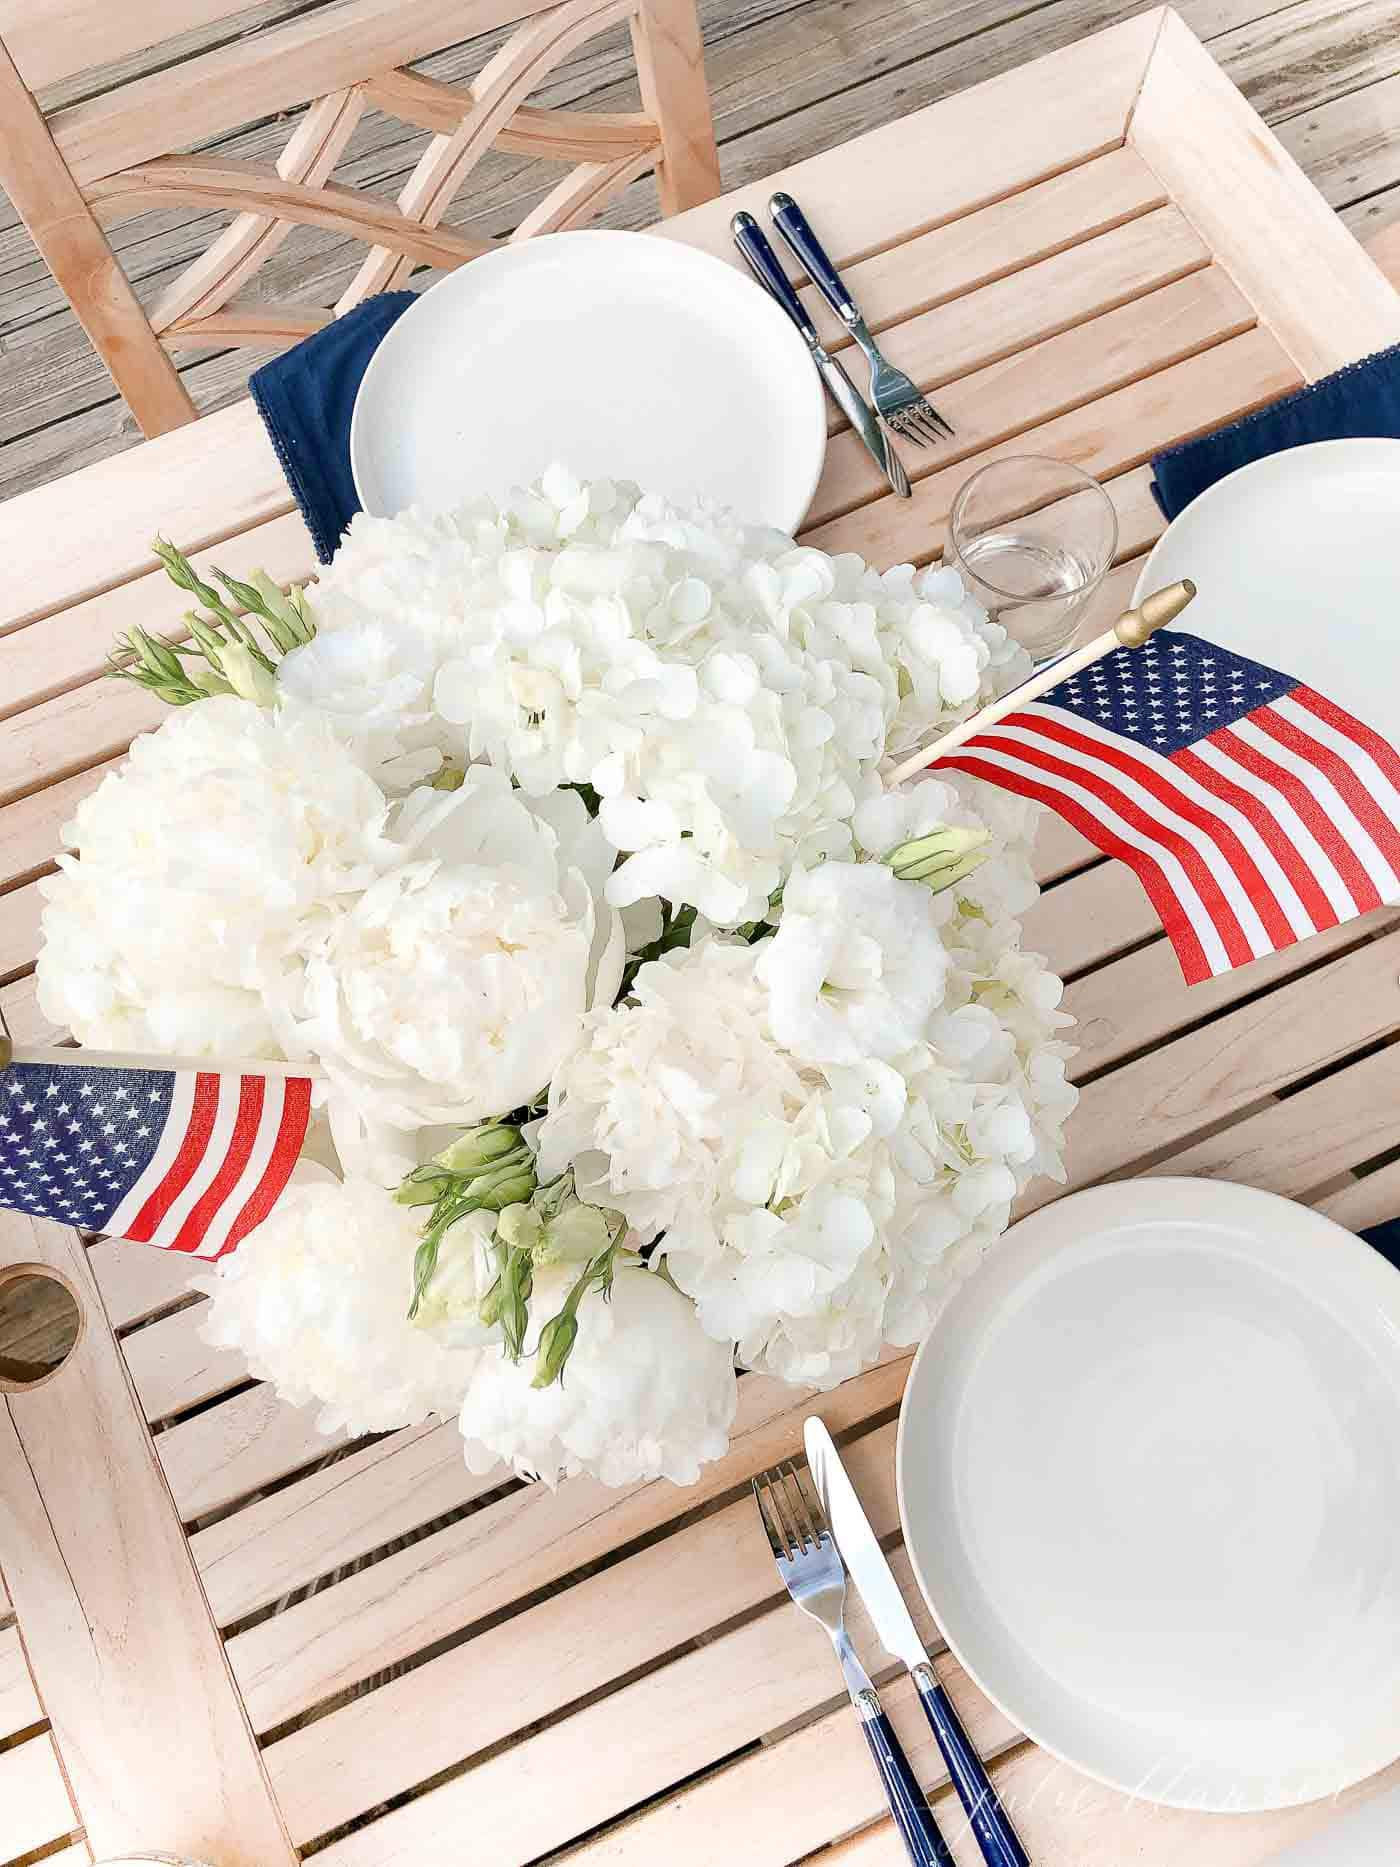 4th of july flags in a white hydrangea centerpiece on a teak outdoor table.